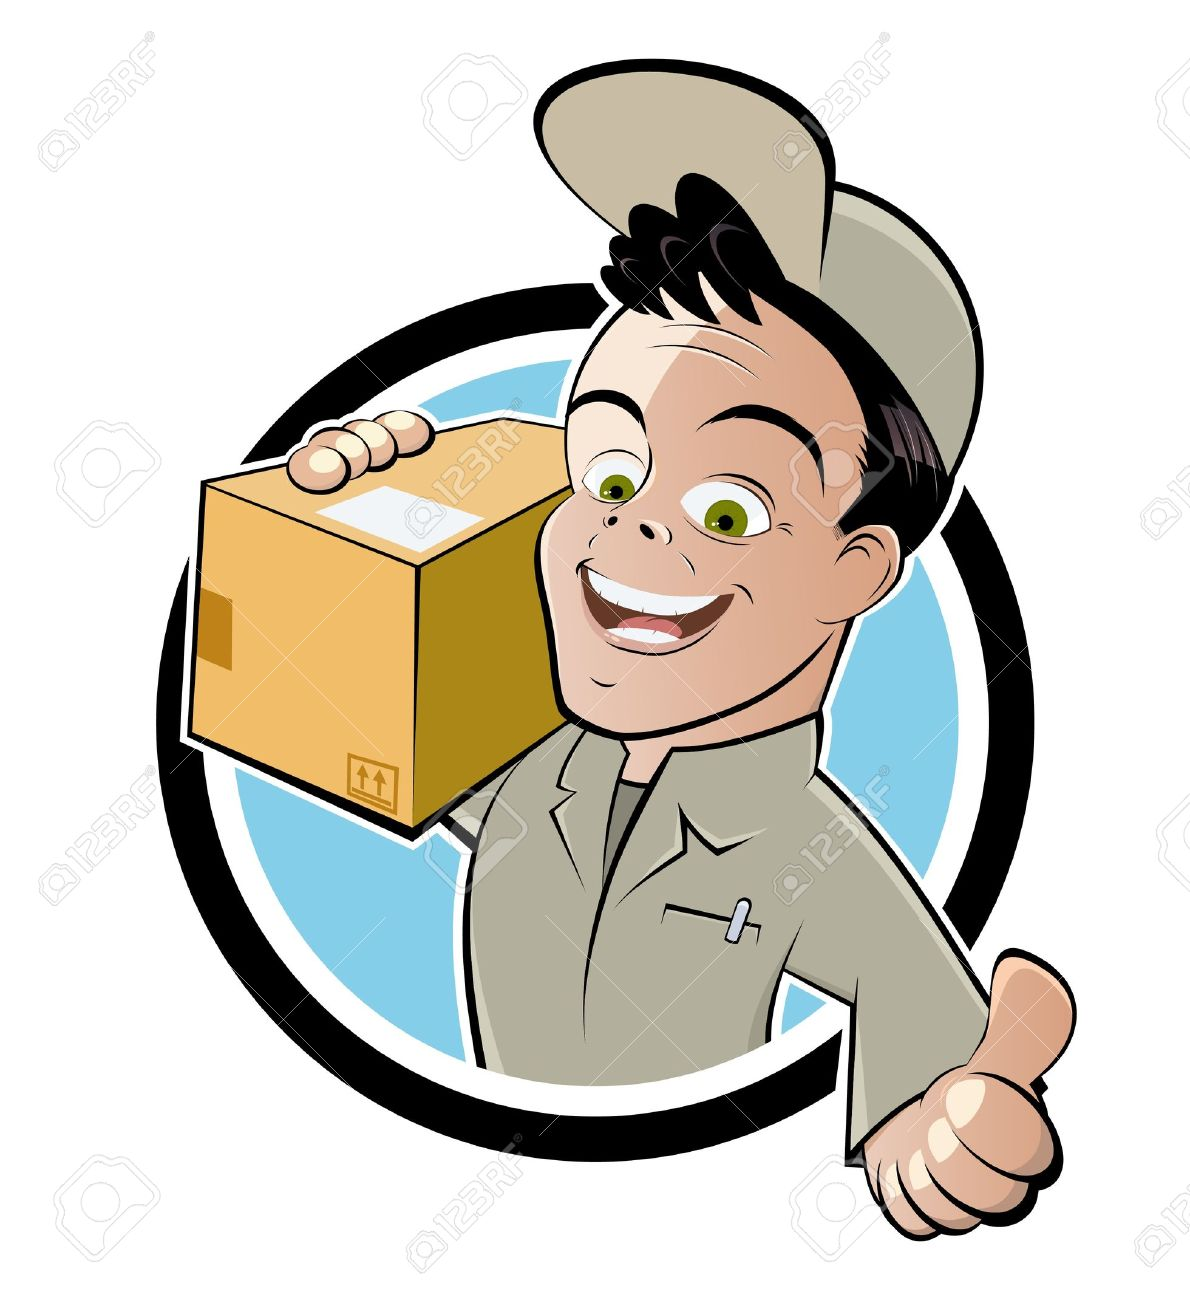 funny parcel service cartoon royalty free cliparts vectors and rh 123rf com clipart delivery truck delivery clipart free